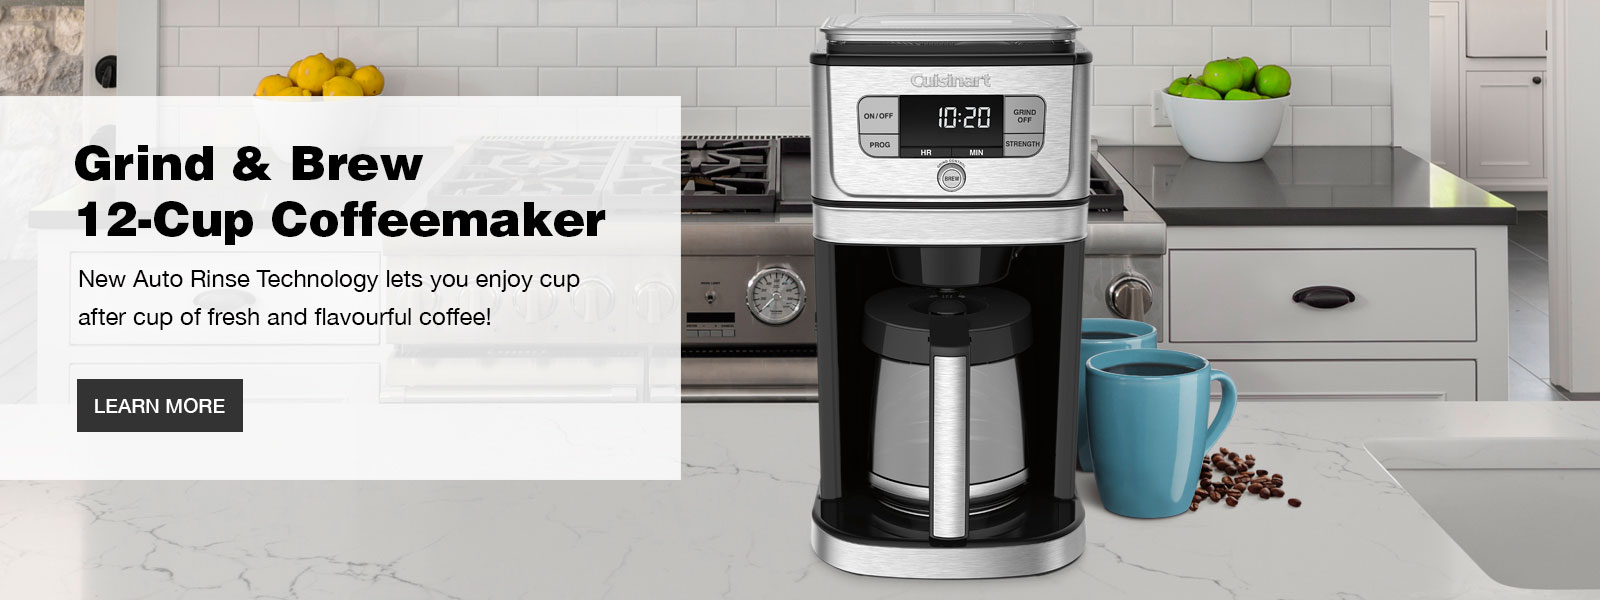 Burr Grind and Brew 12-Cup Coffeemaker